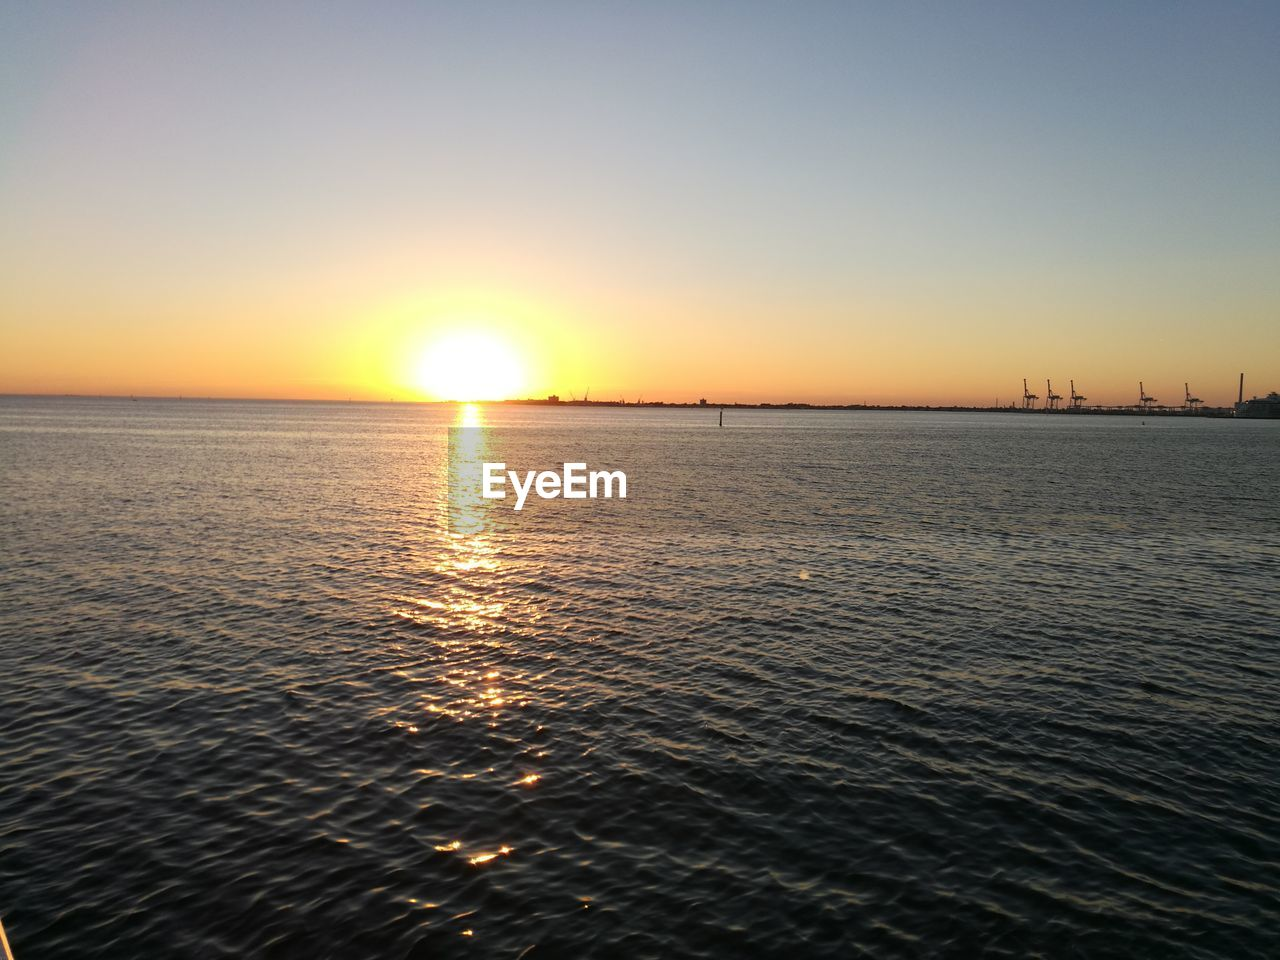 sunset, sun, sea, beauty in nature, scenics, nature, water, tranquil scene, tranquility, sunlight, idyllic, reflection, no people, sky, outdoors, clear sky, horizon over water, day